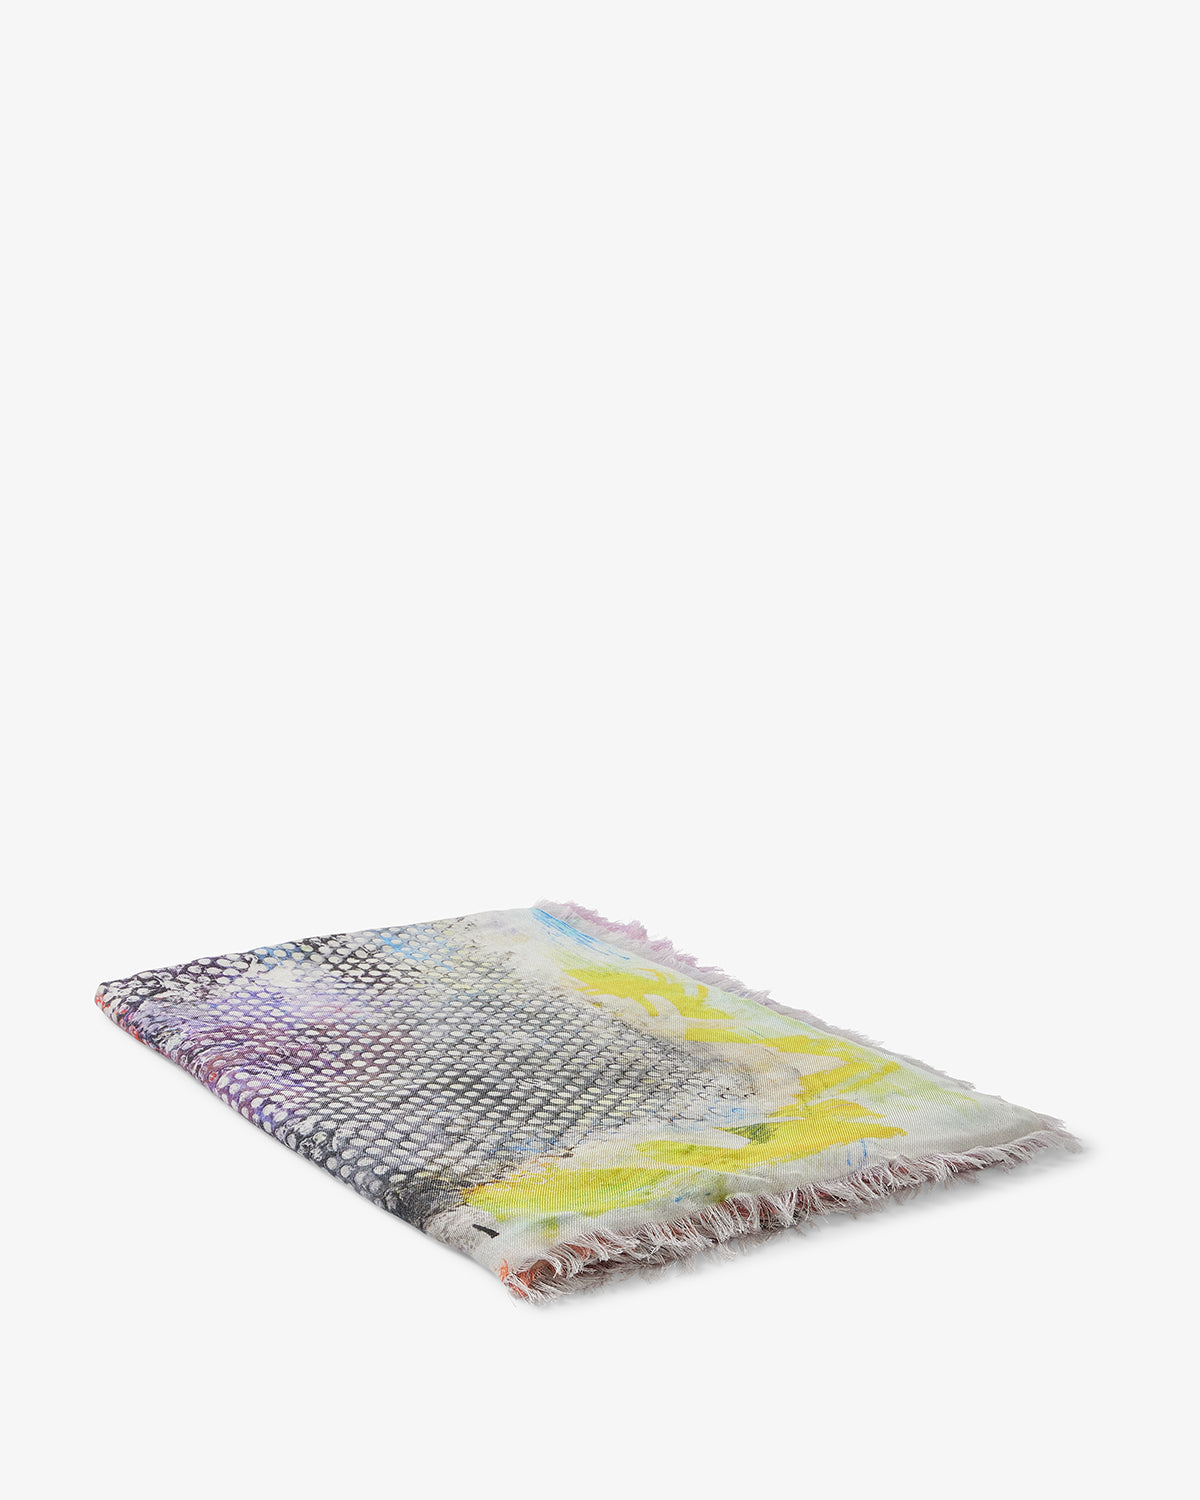 Jack Whitten Willi Meets The Keeper Wrap Default Title